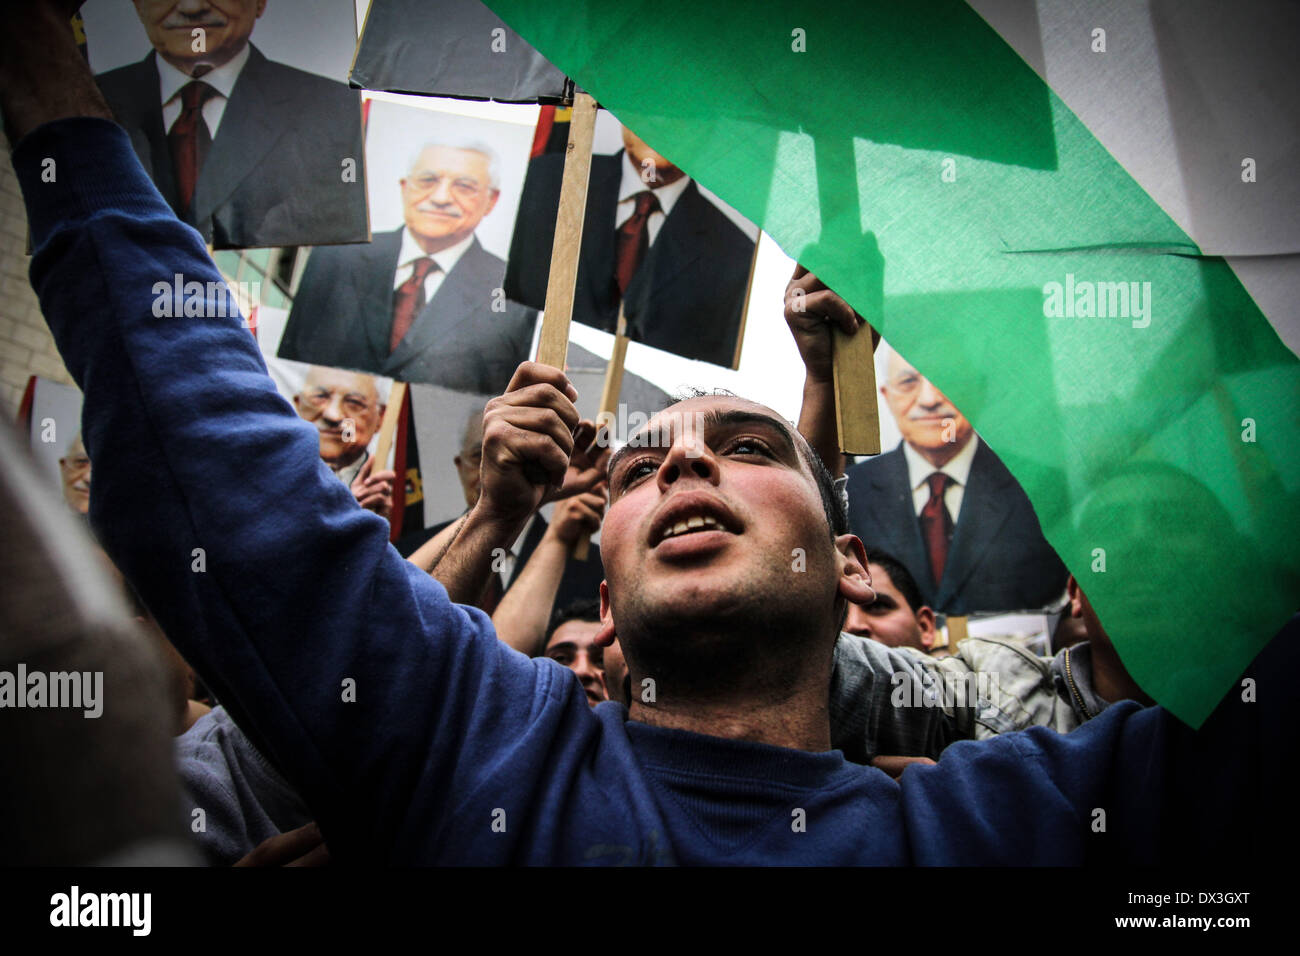 Ramallah, Palestinian Territories. 17th Mar, 2014. March 17, 2014 - Ramallah, West Bank, Palestinian Territory  Stock Photo